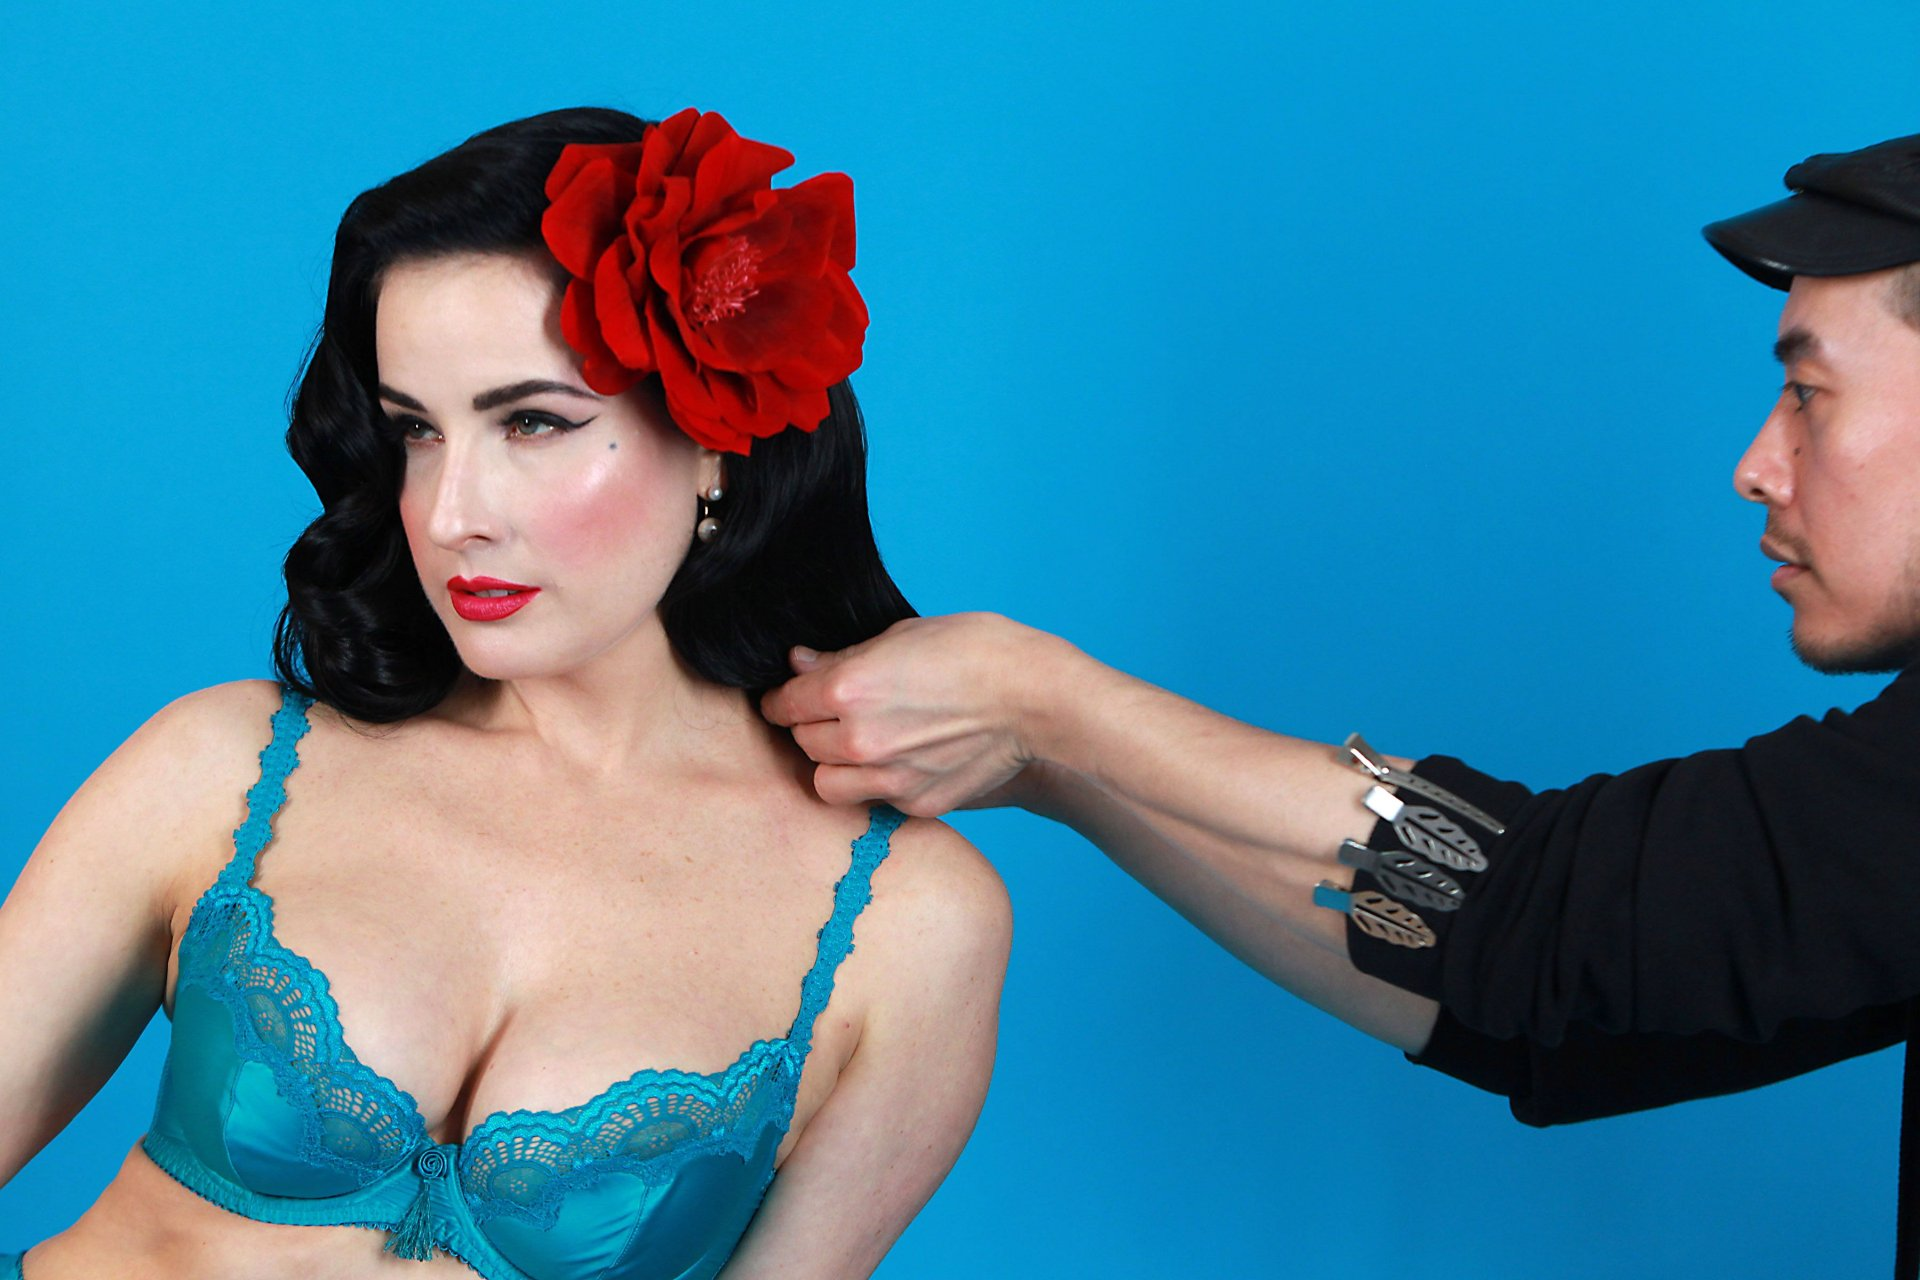 Dita von teese and flower edwards poolside pussyside 9